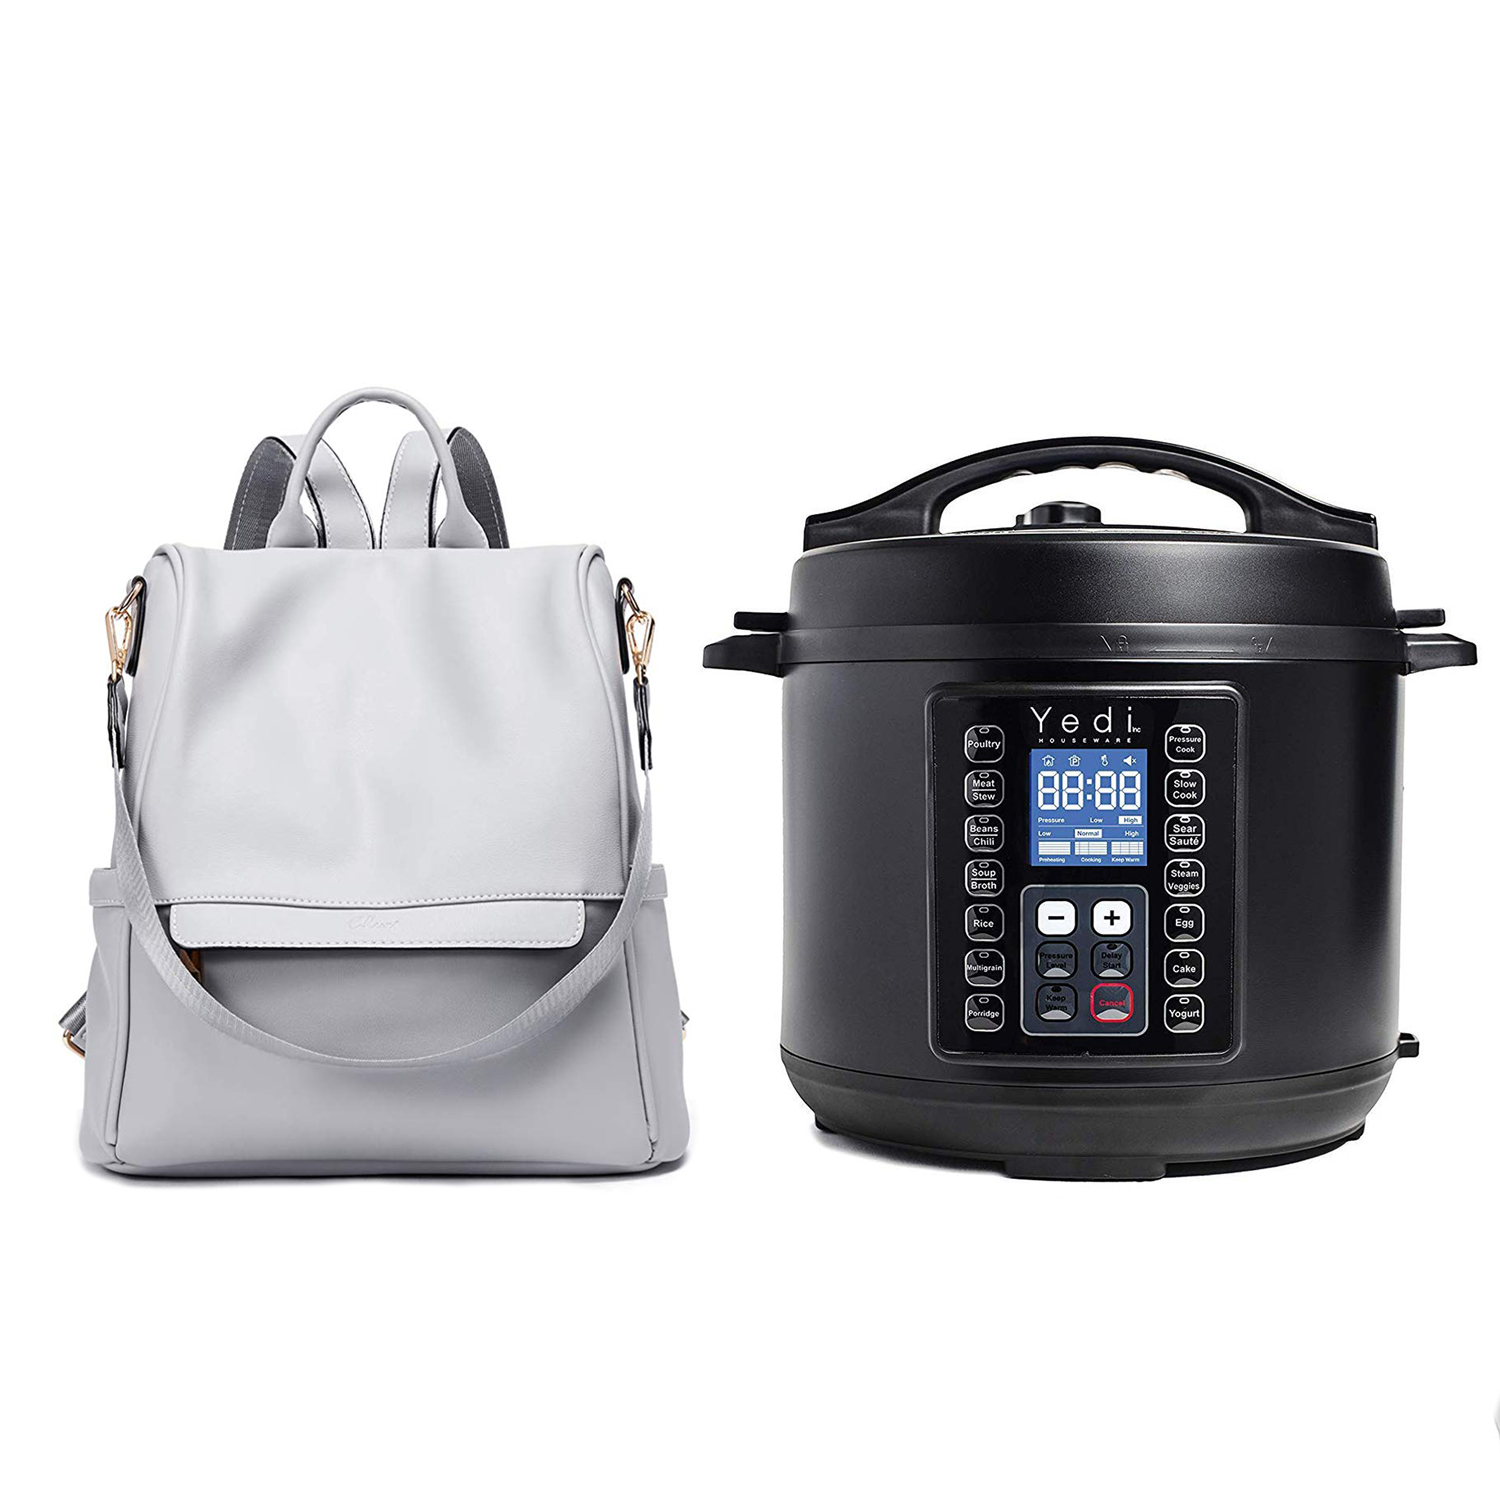 Backpacks Anti-theft Large and Yedi 9-in-1Instant Programmable Pressure Cooker